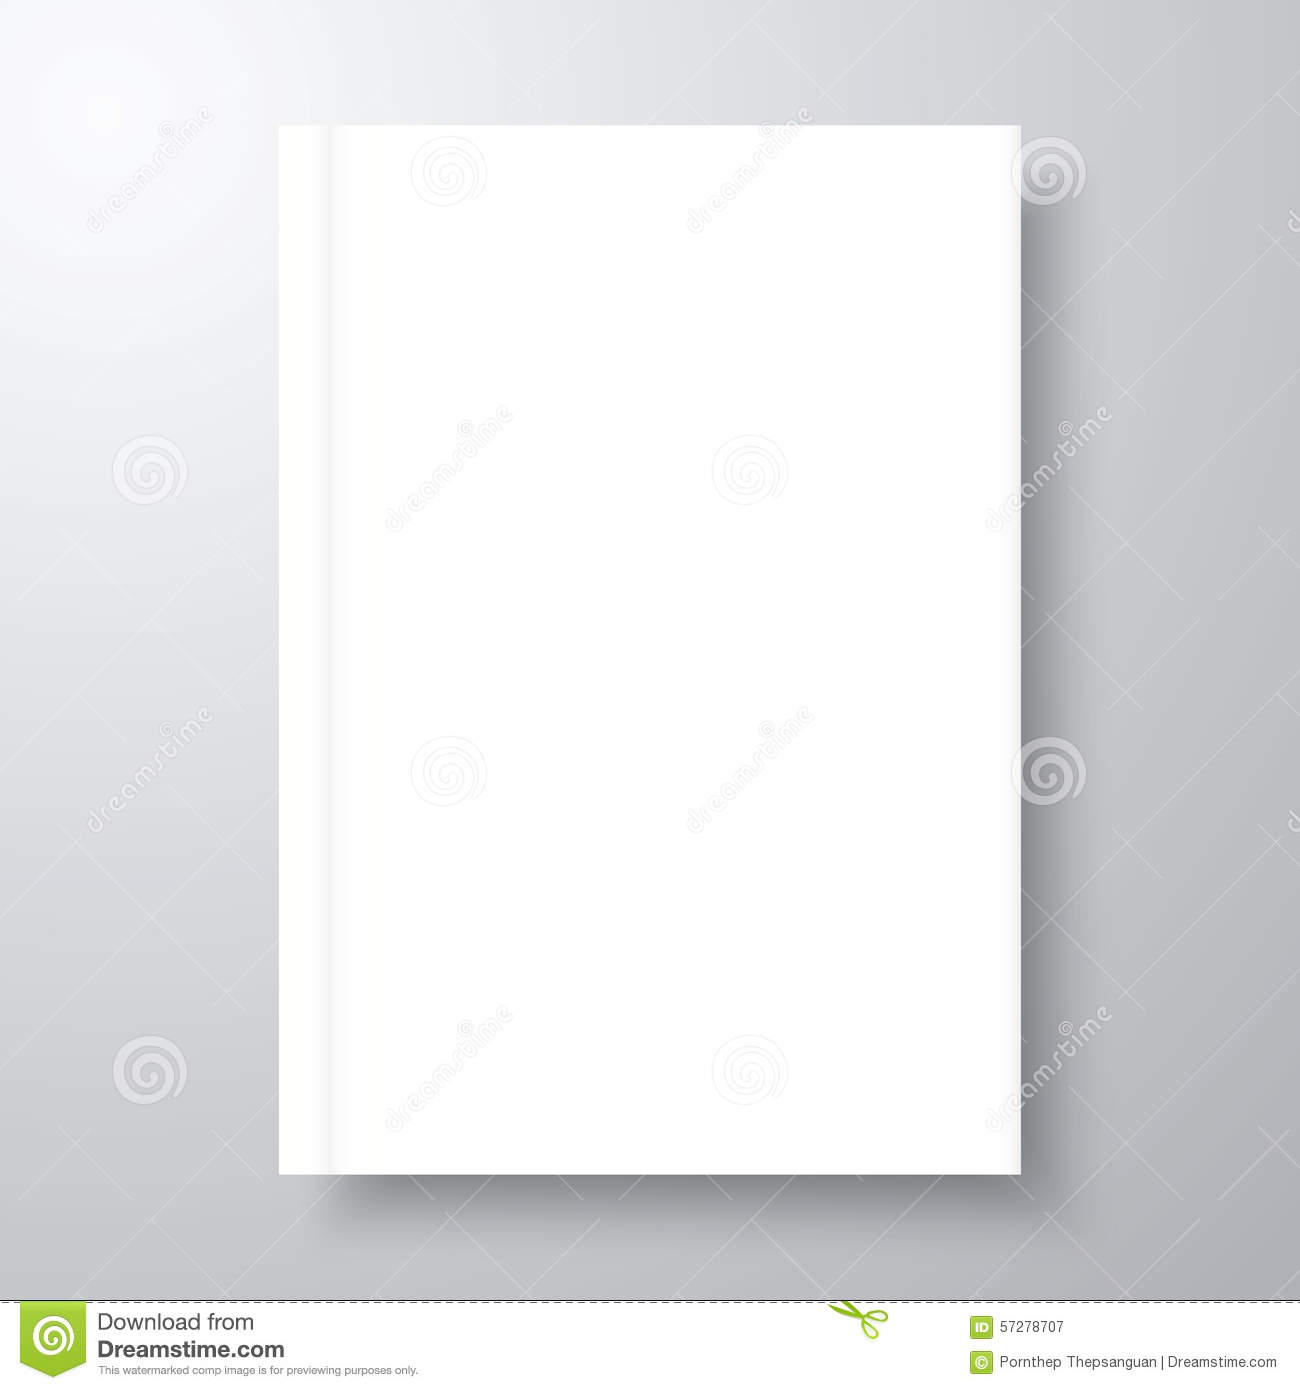 Book mockup with shadow. Blank empty template layout in A4 size for ...